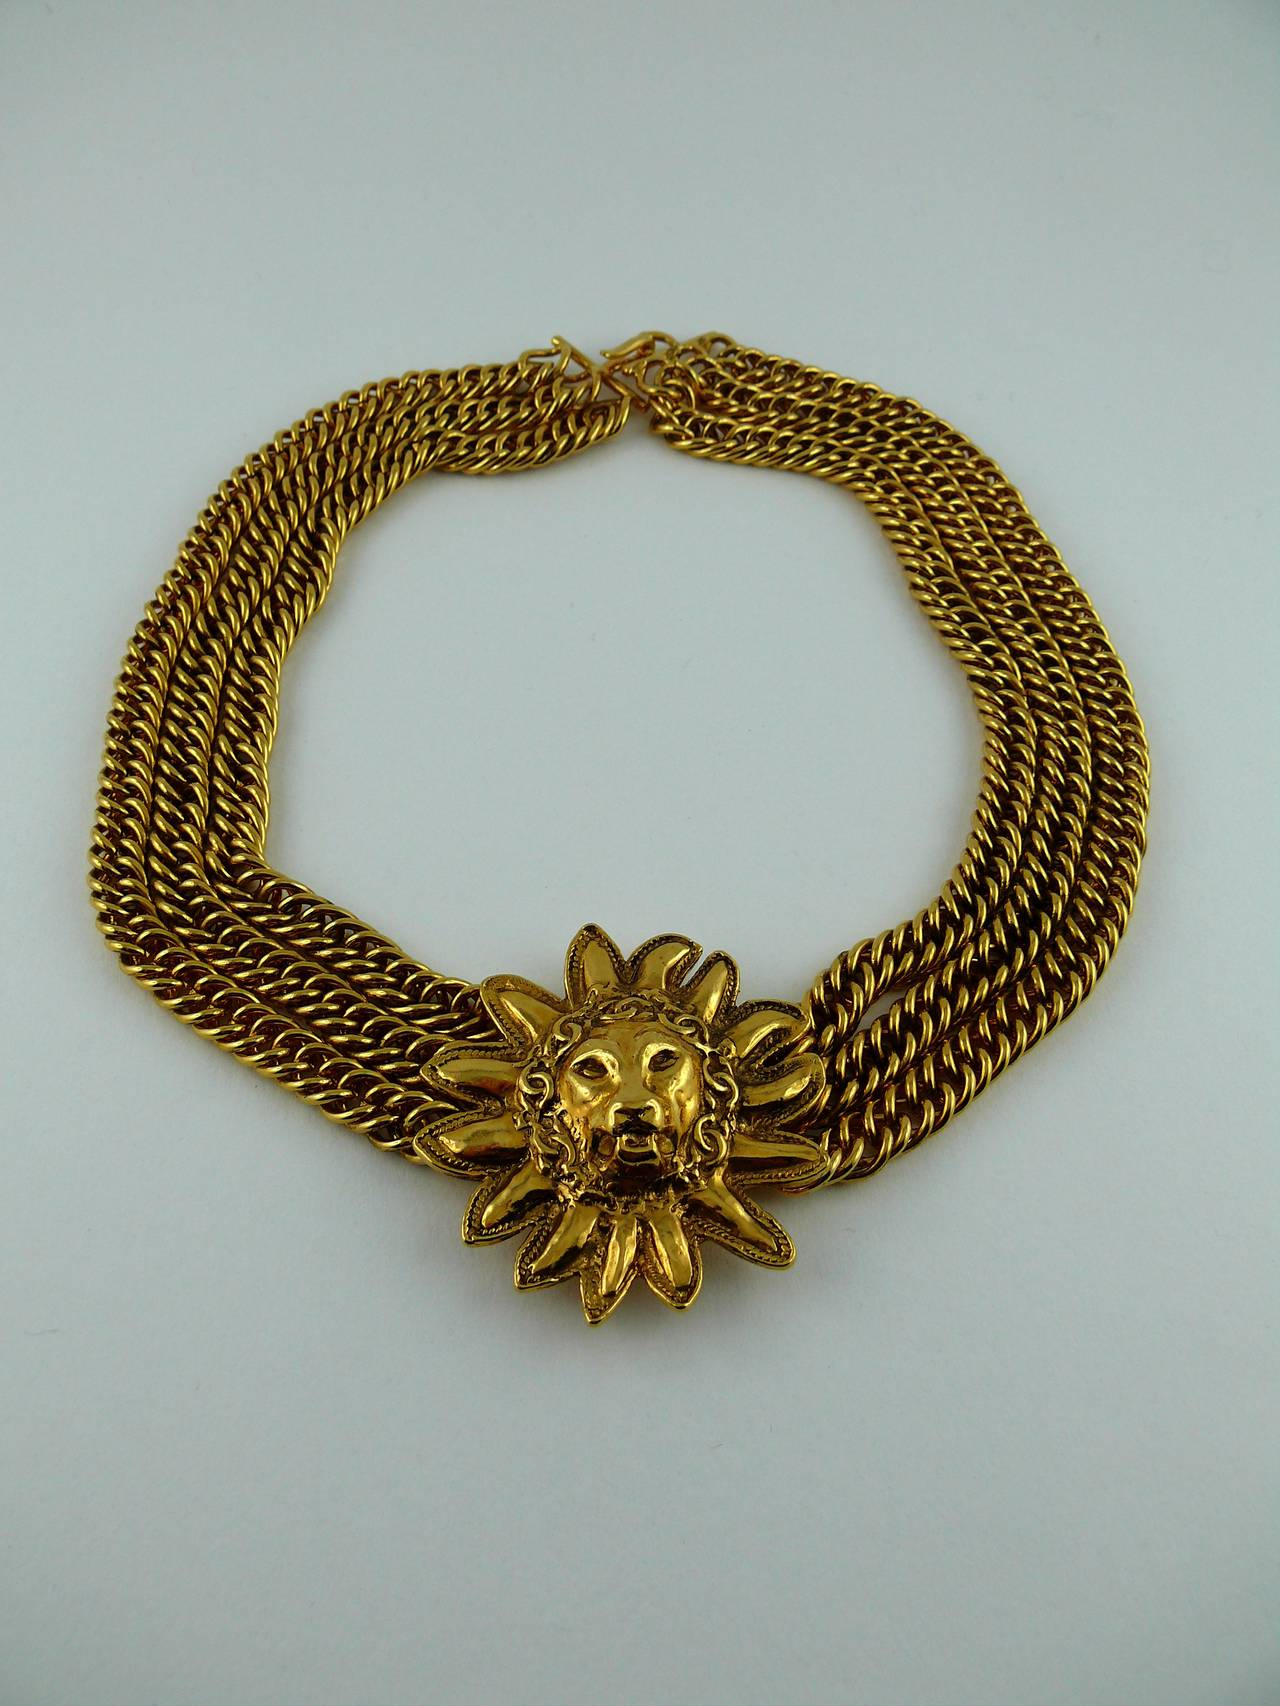 Chanel Vintage Gold Plated Leo Choker Necklace 2